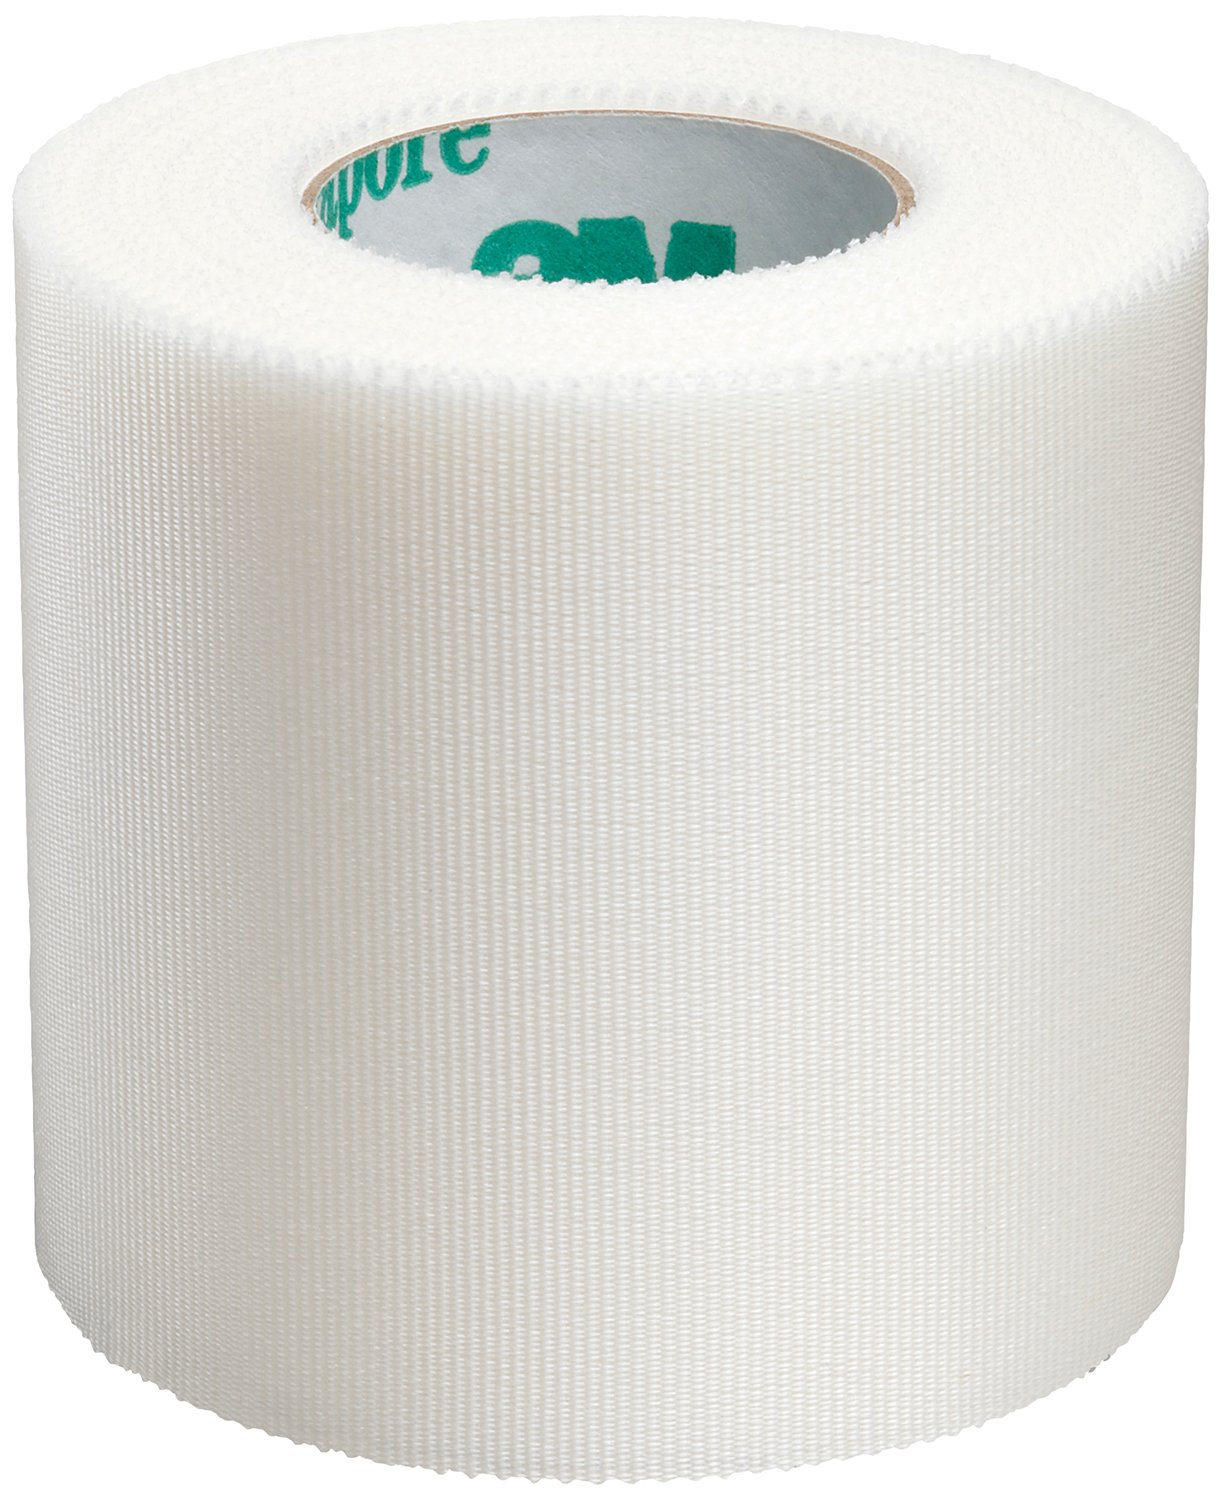 3M 1538-2 Durapore Tape (Pack of 6)